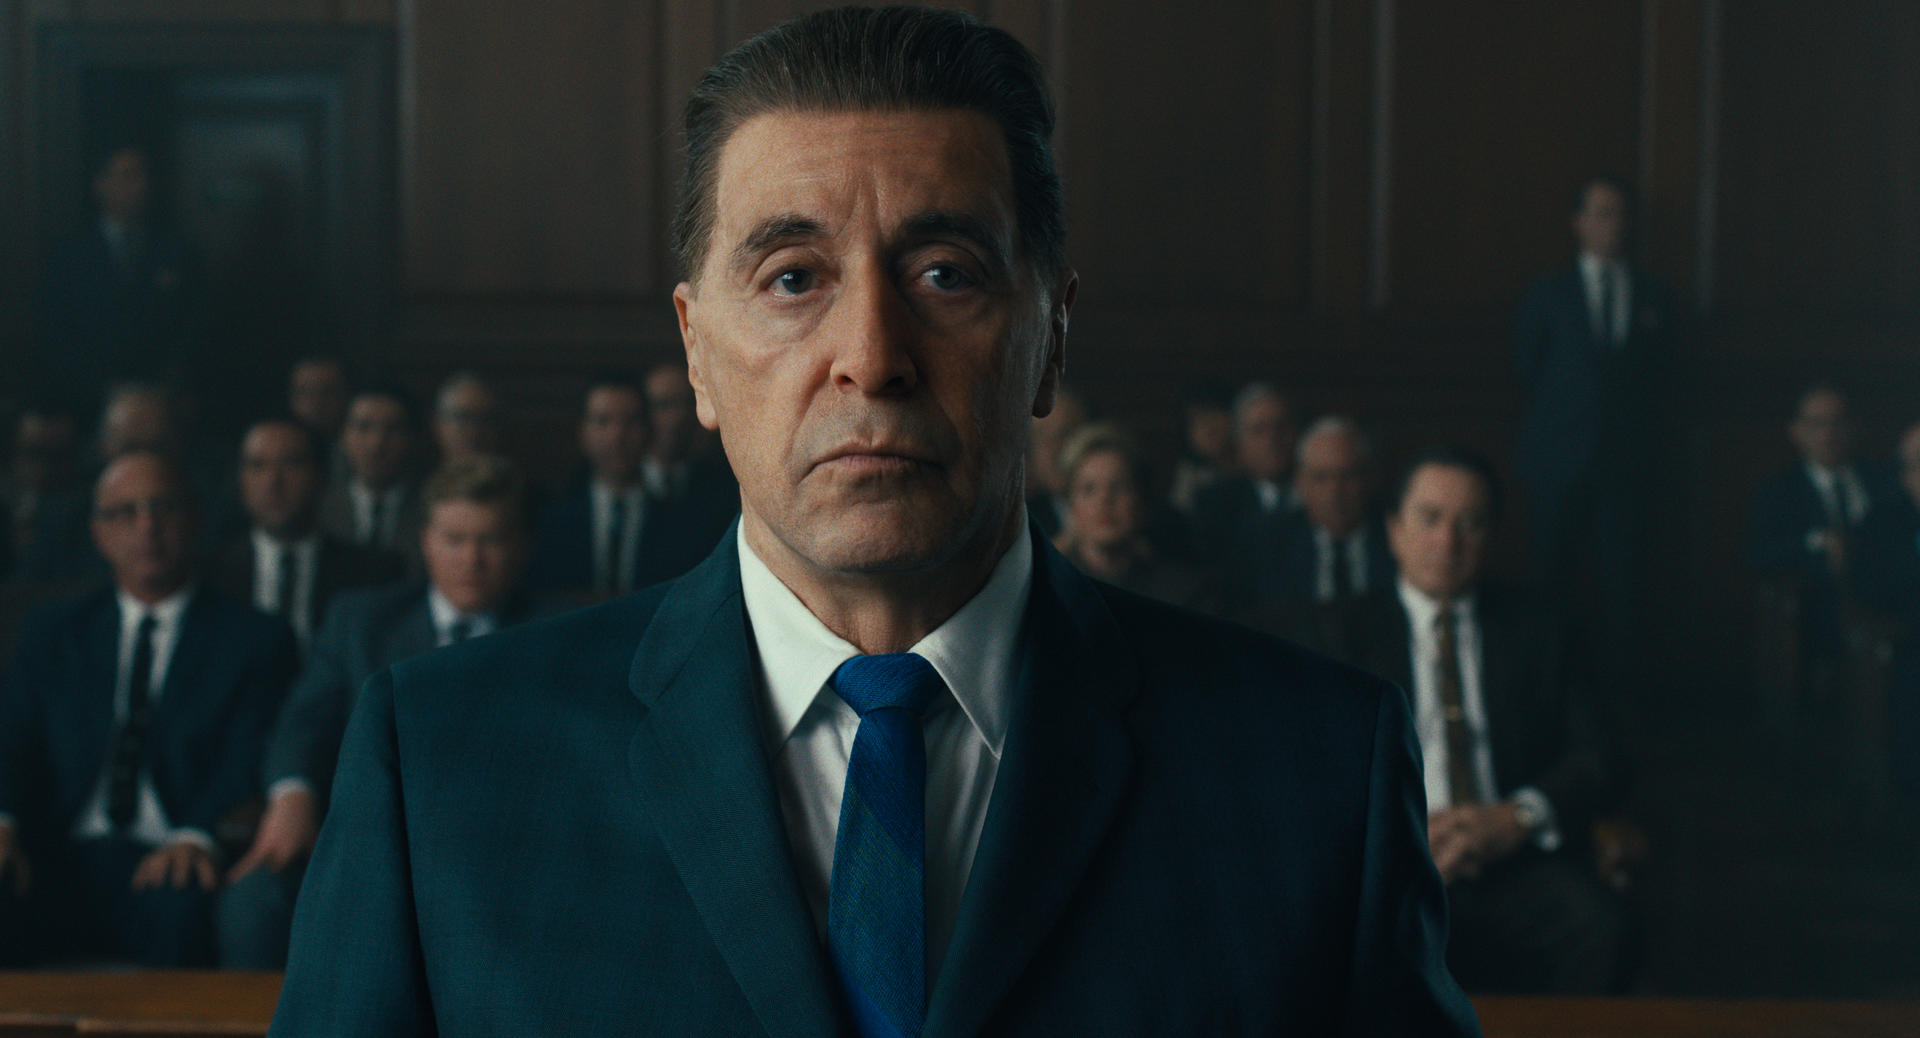 De-aged Al Pacino in <i>The Irishman</i>.